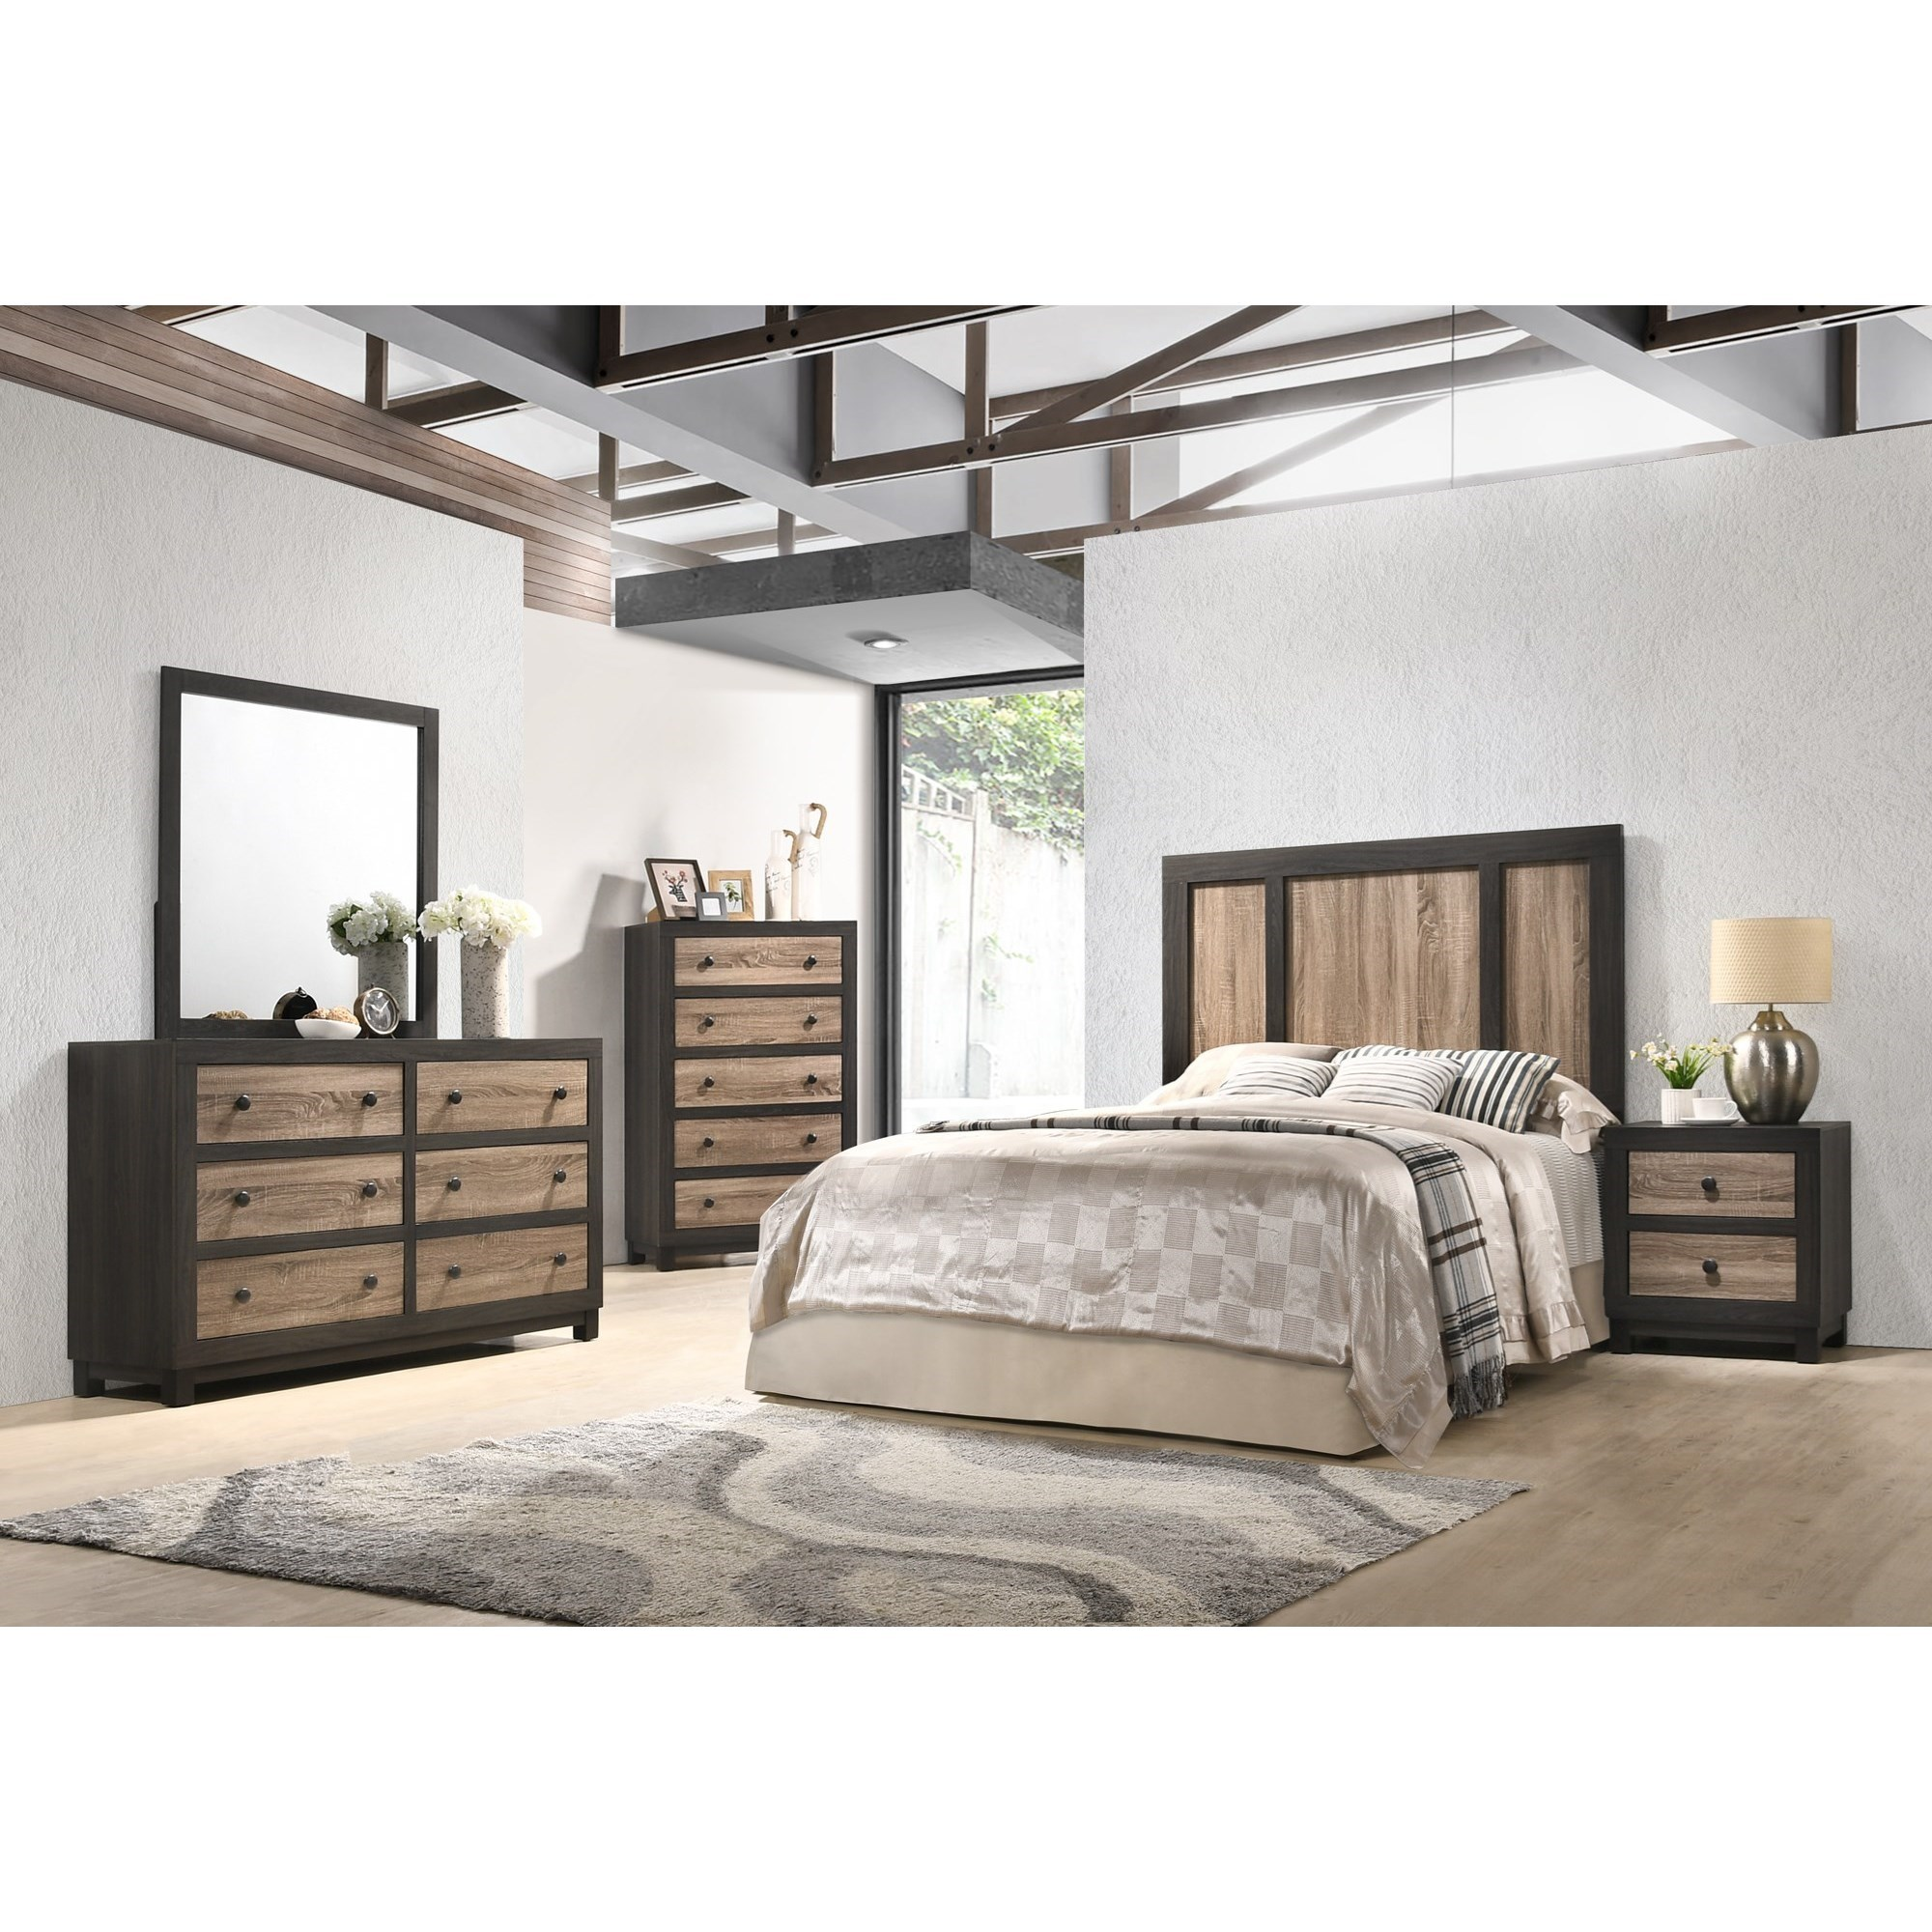 C8118 4 Piece Queen Bedroom Group